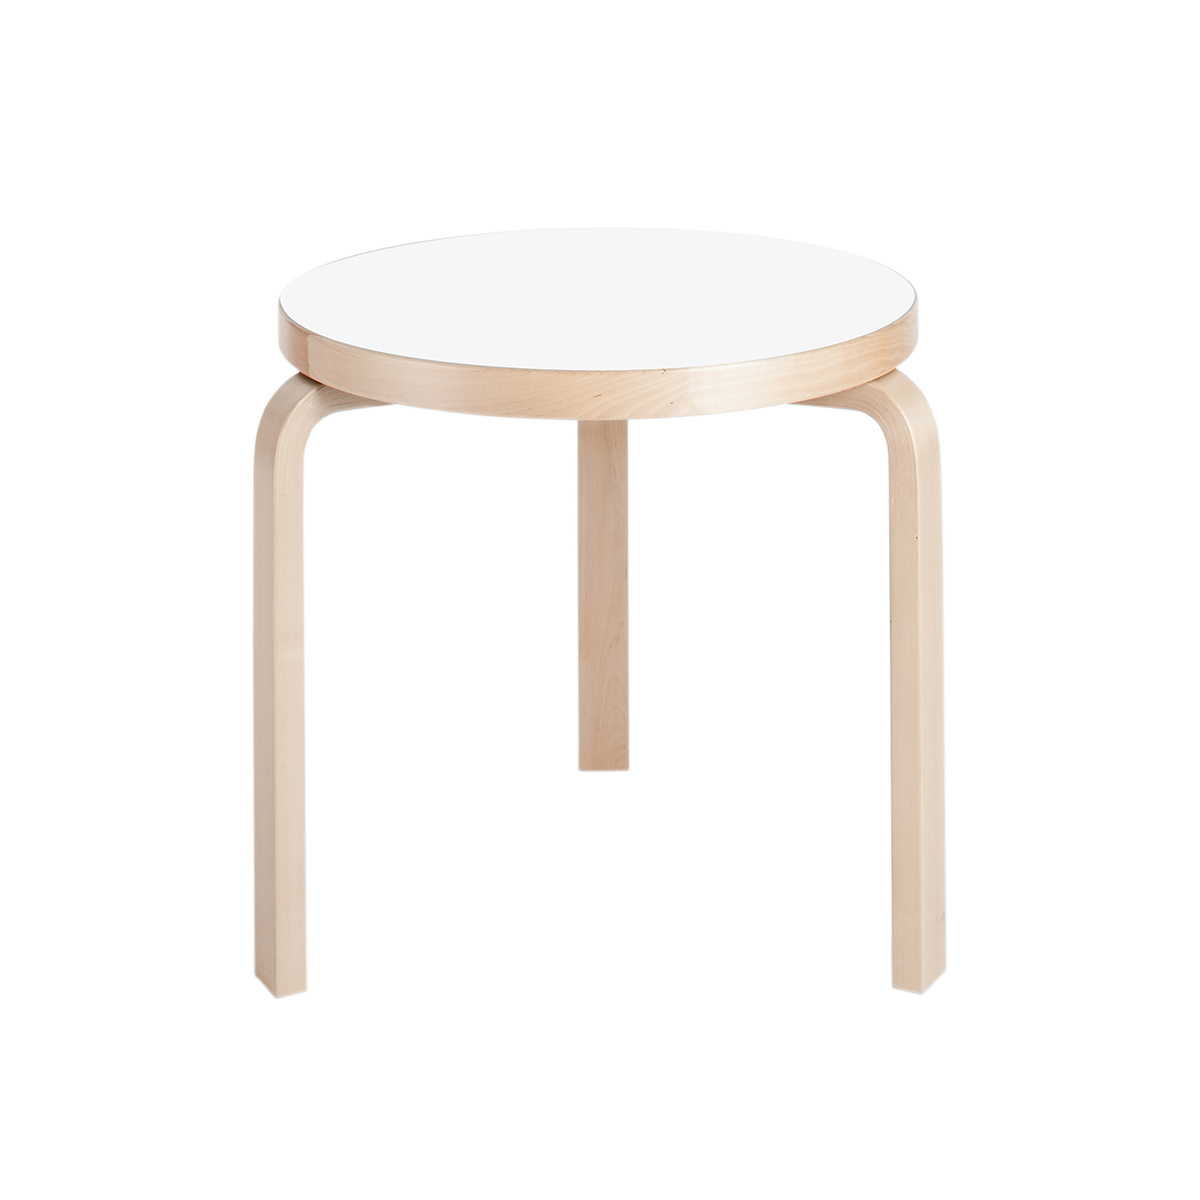 Artek Alvar Aalto Round Three Legged Table 90c Dining And Conference Tables